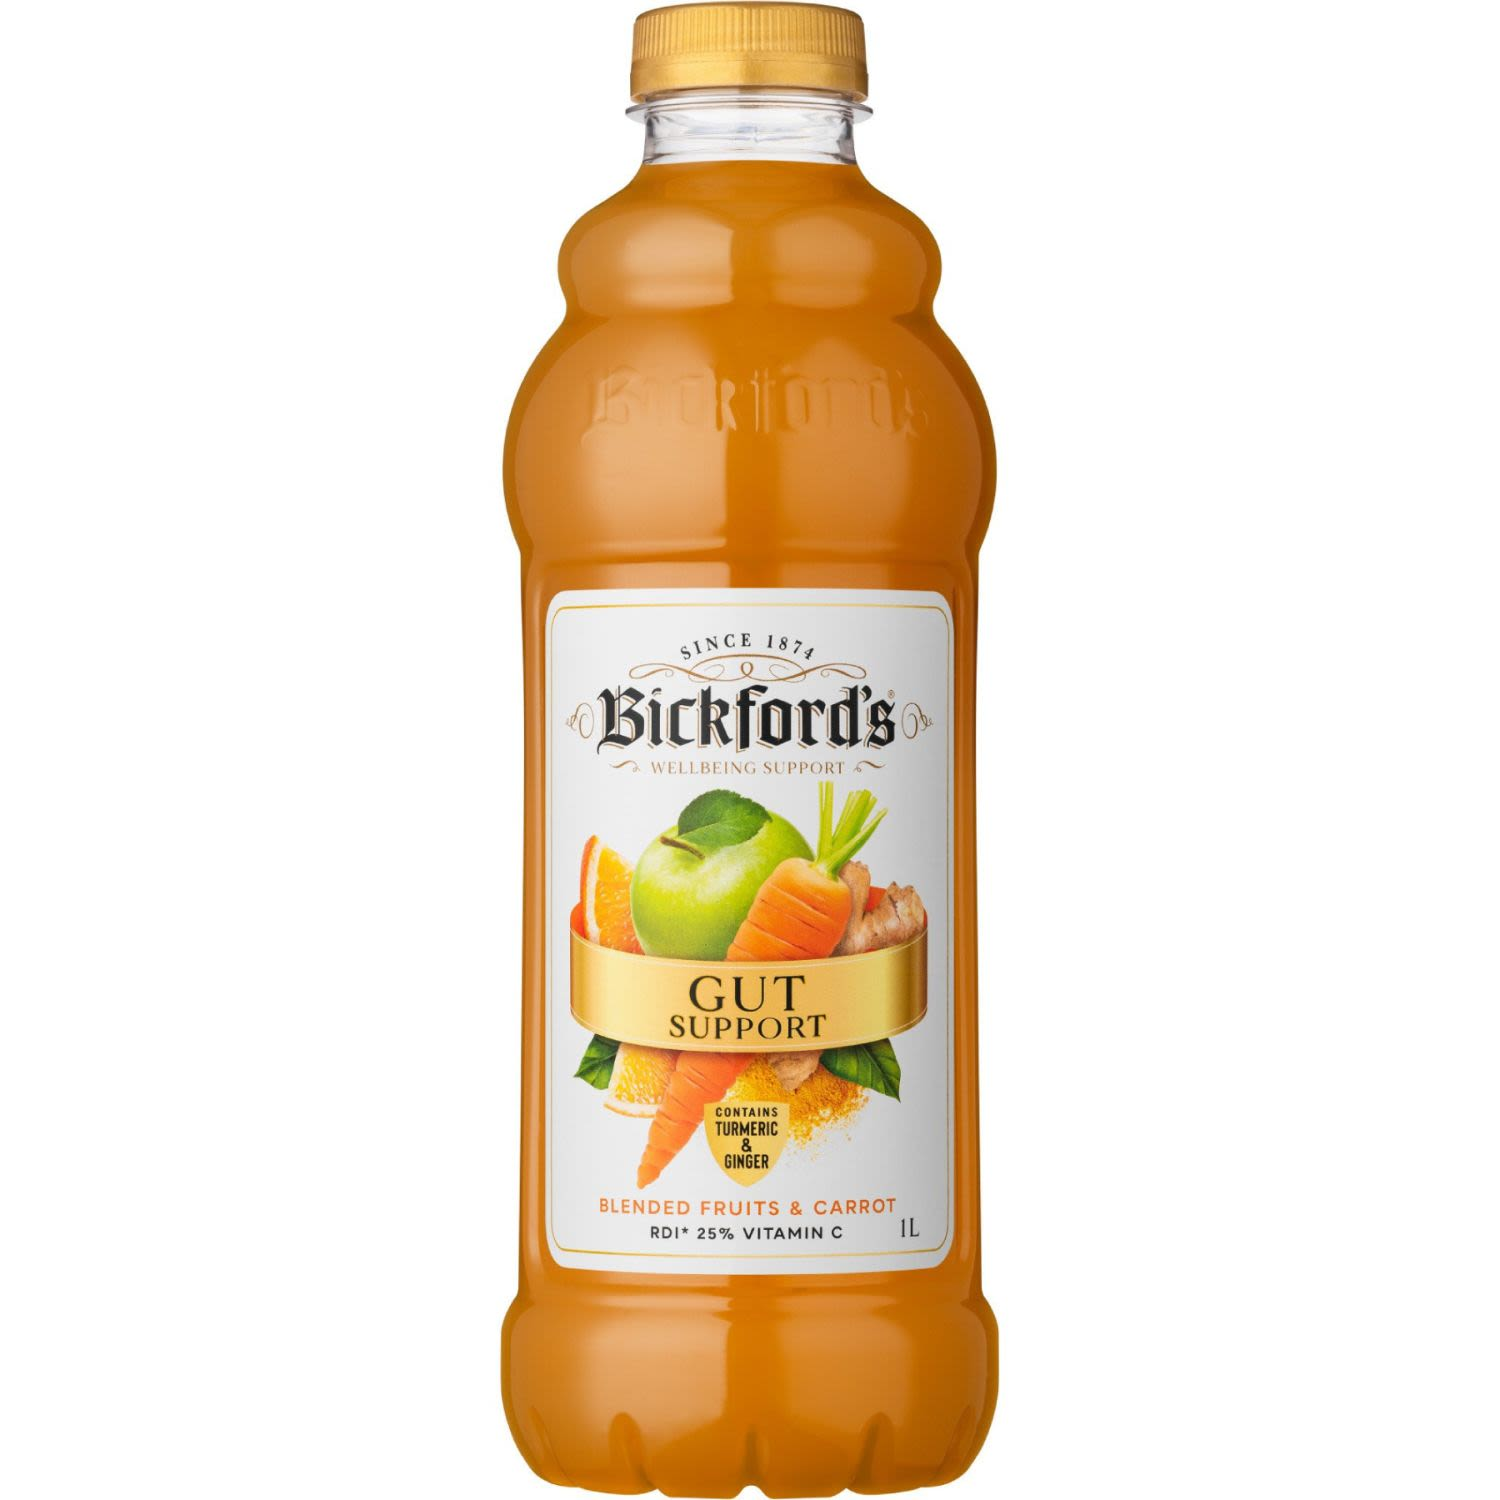 Bickford's Wellbeing Support Juice Gut Support, 1 Litre